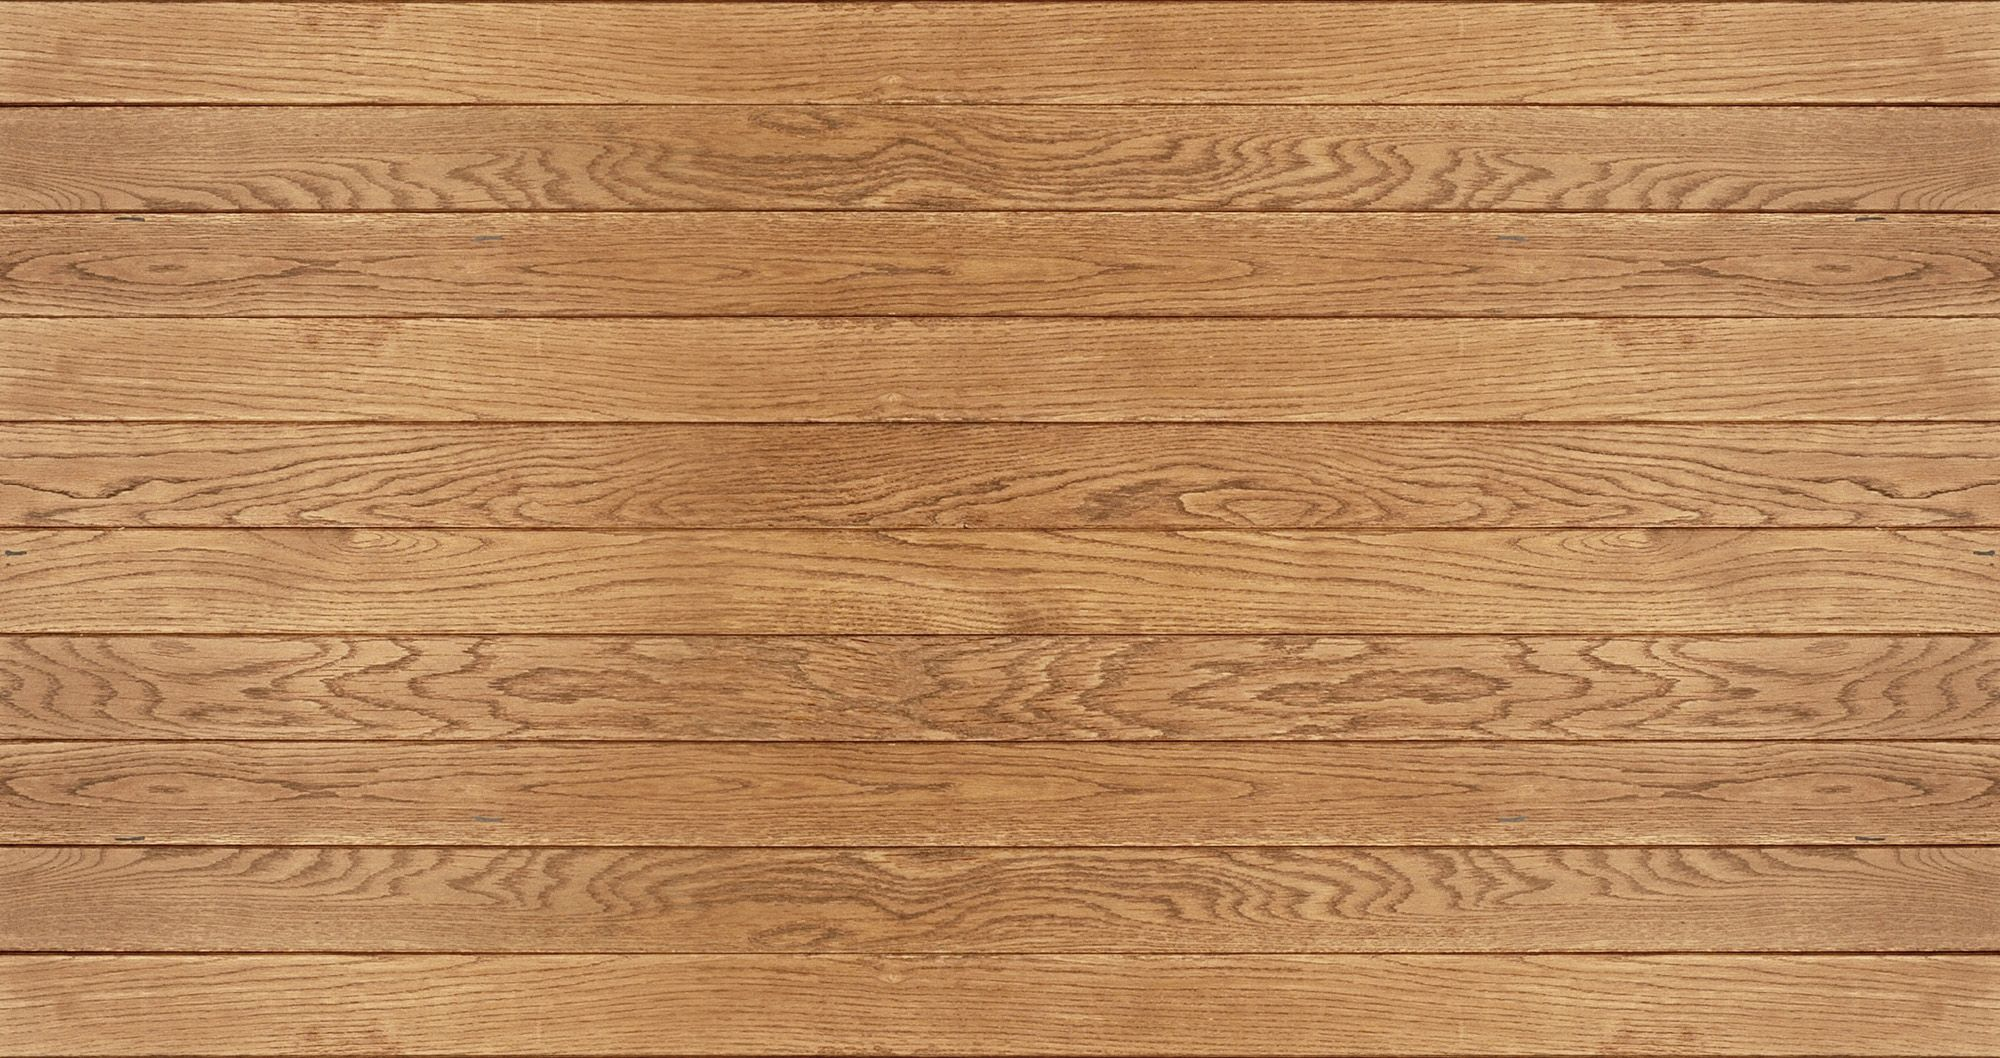 Tileable wood plank texture dark wood plan seamless t e for Wood plank seamless texture